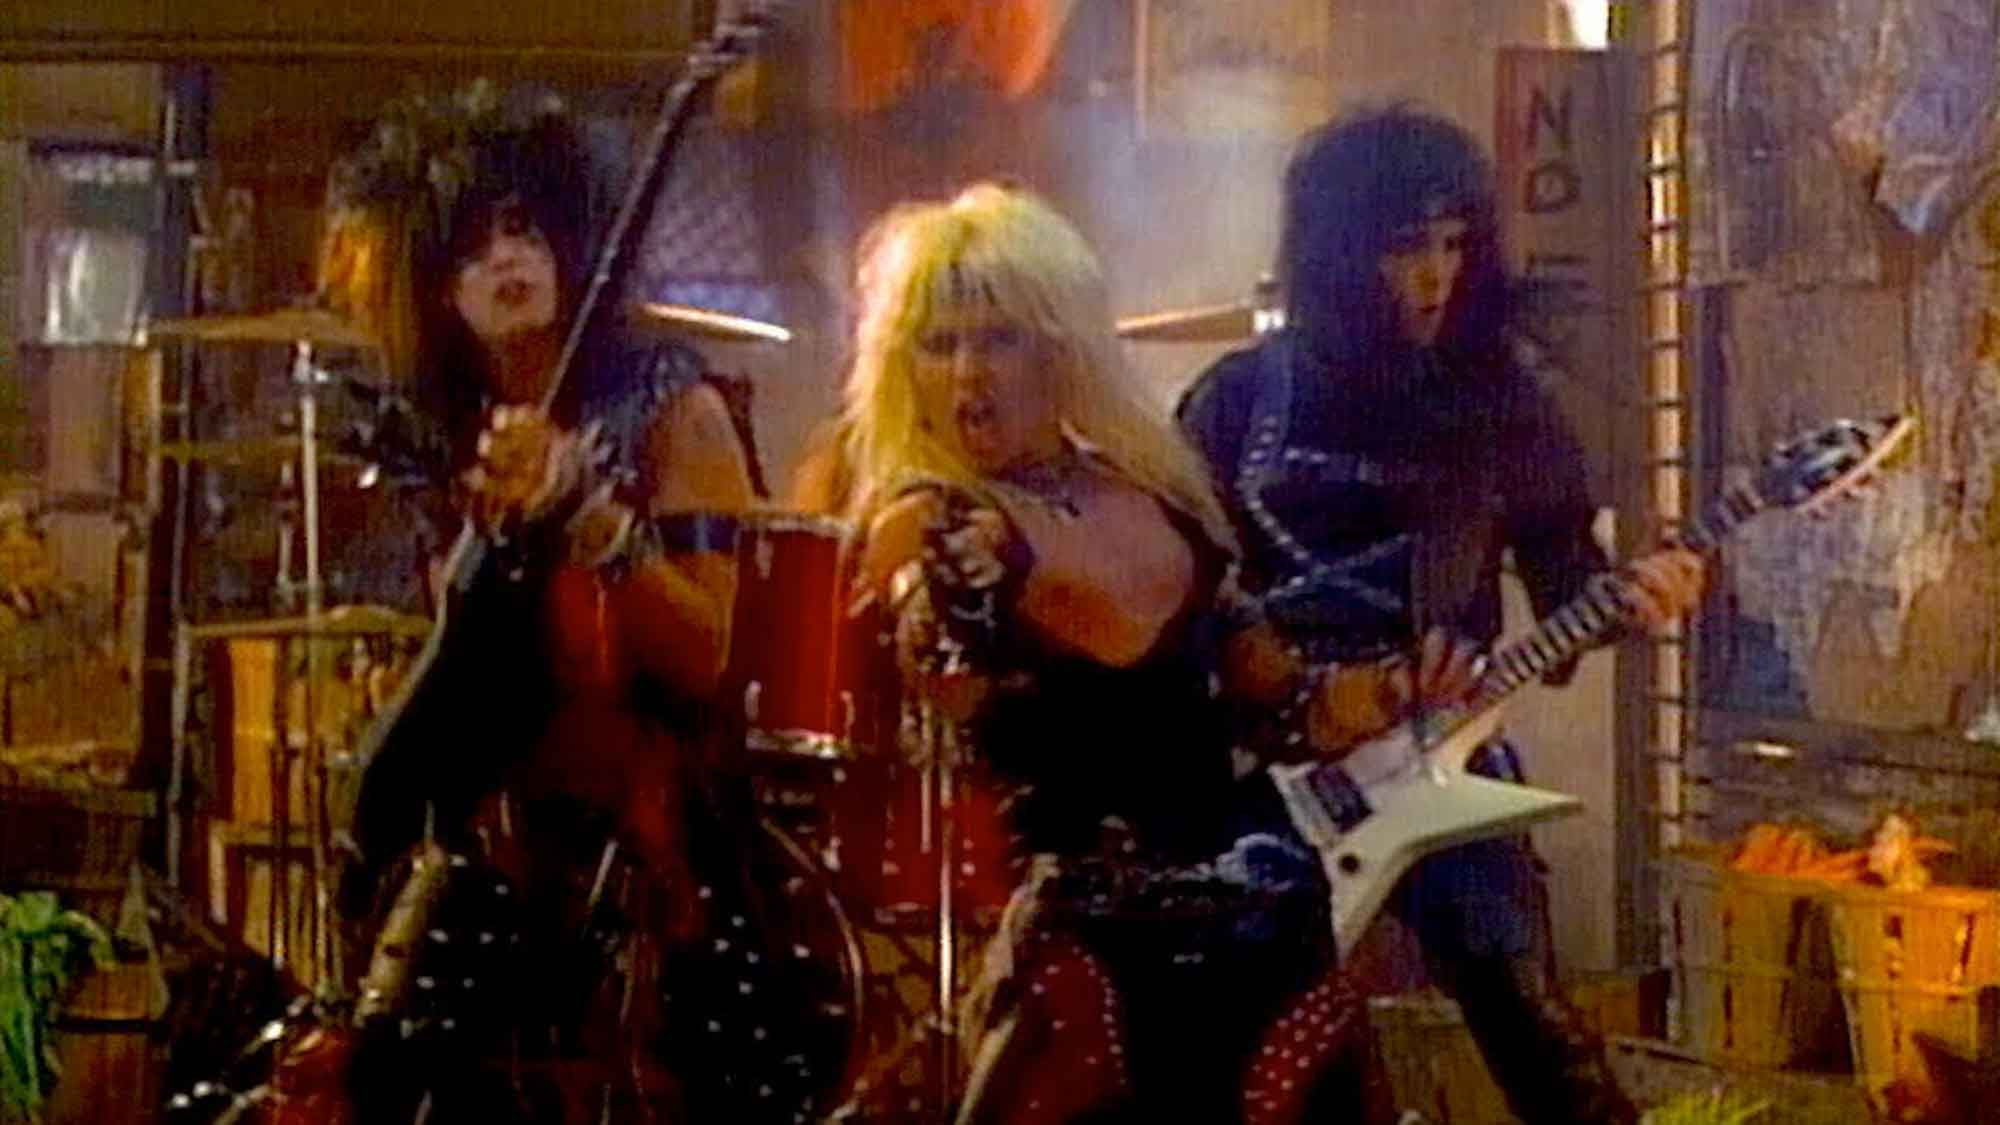 Too Young To Fall In Love - Motley Crue